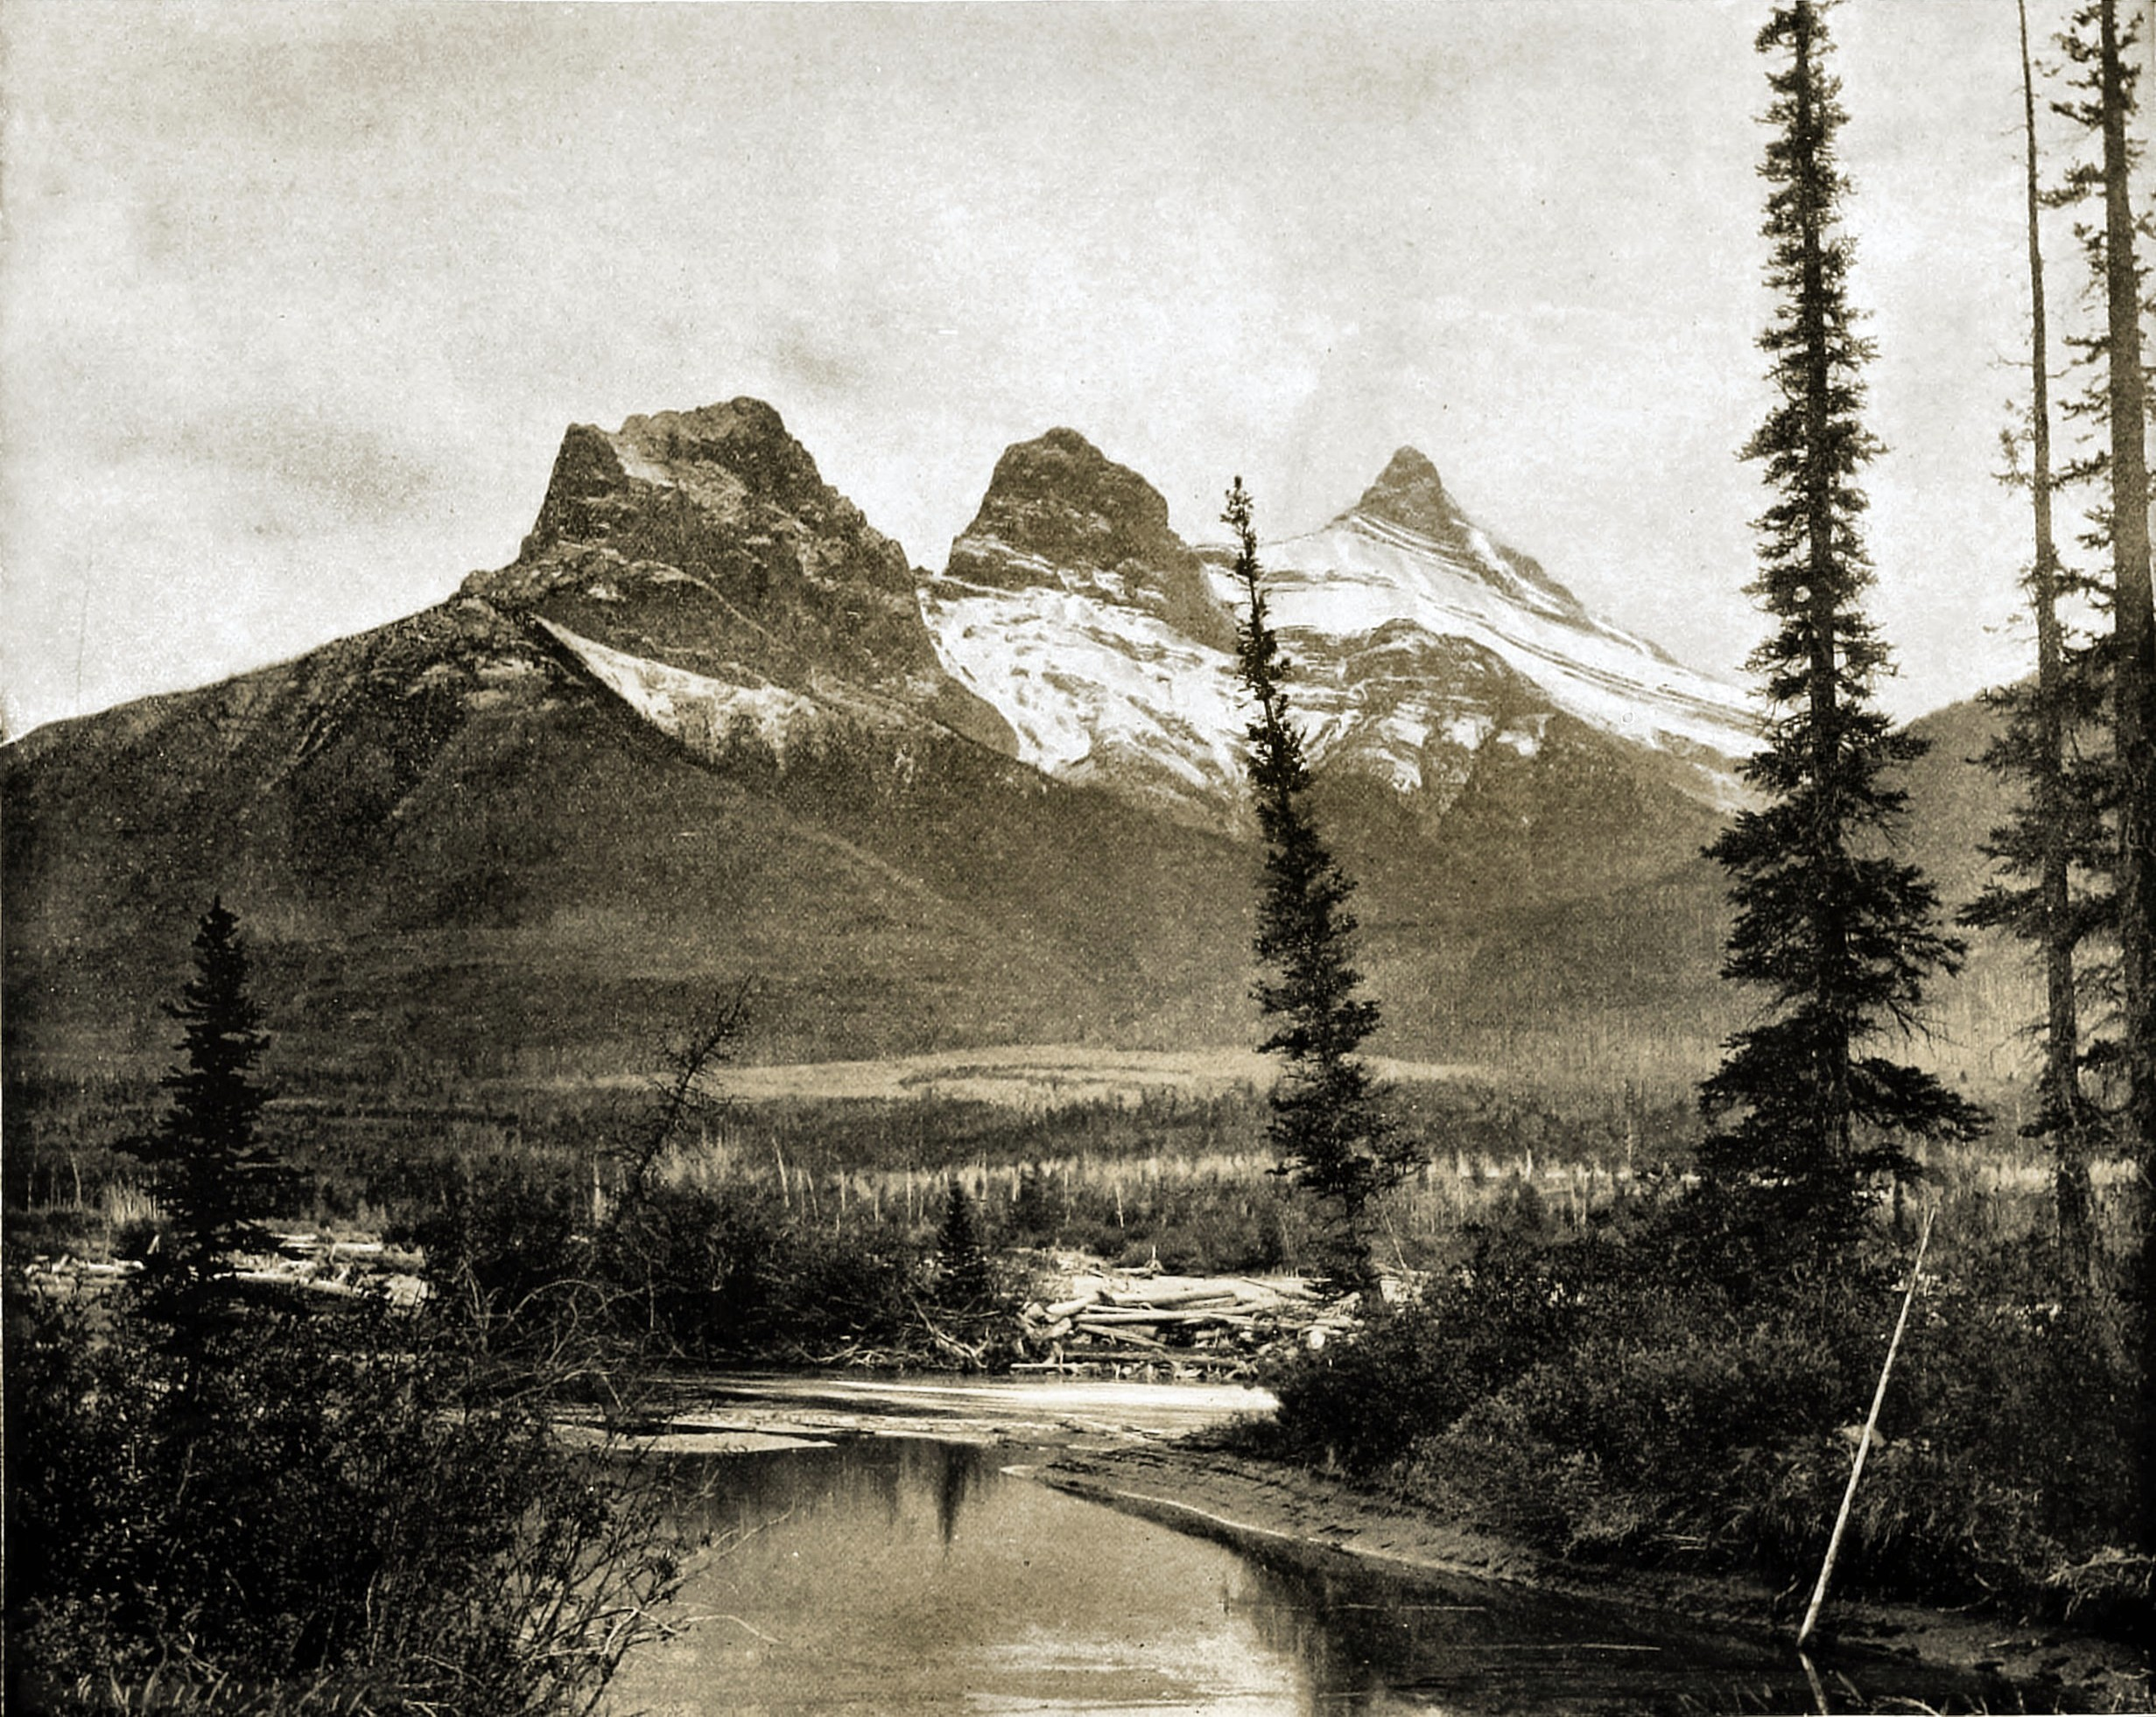 The Three Sisters, Canmore, Canada about 1892